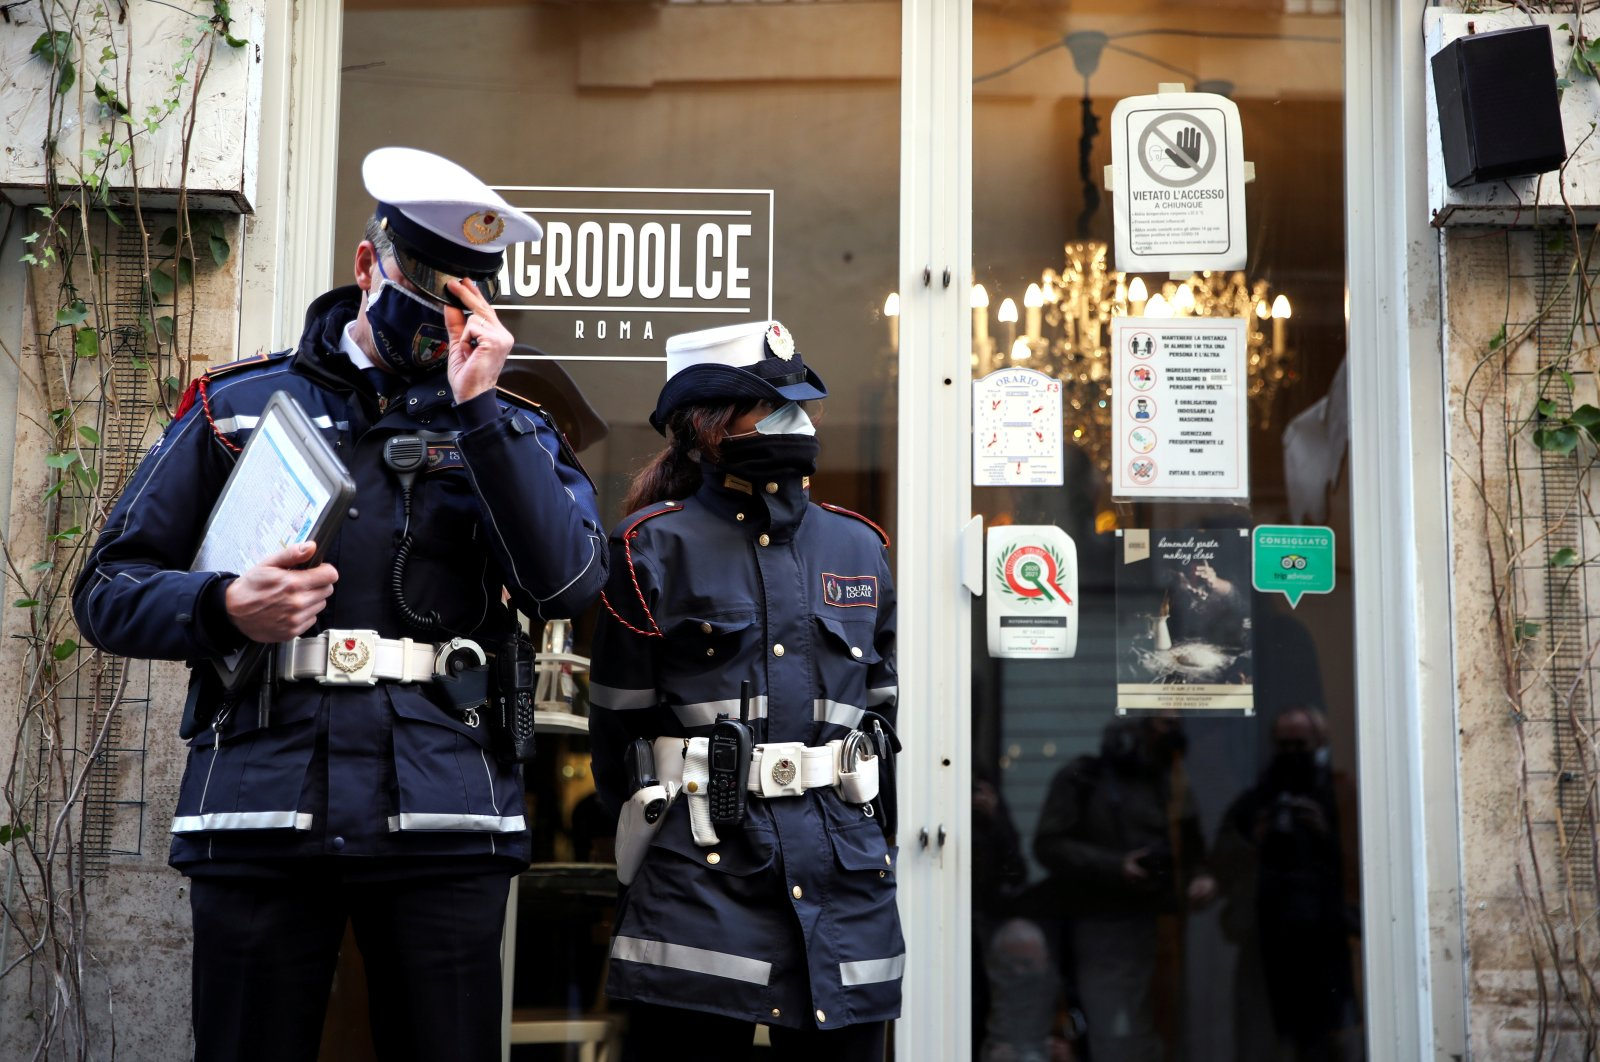 Municipal police stand outside a restaurant near the Trevi Fountain in Rome, Italy, April 7, 2021. (Reuters Photo)